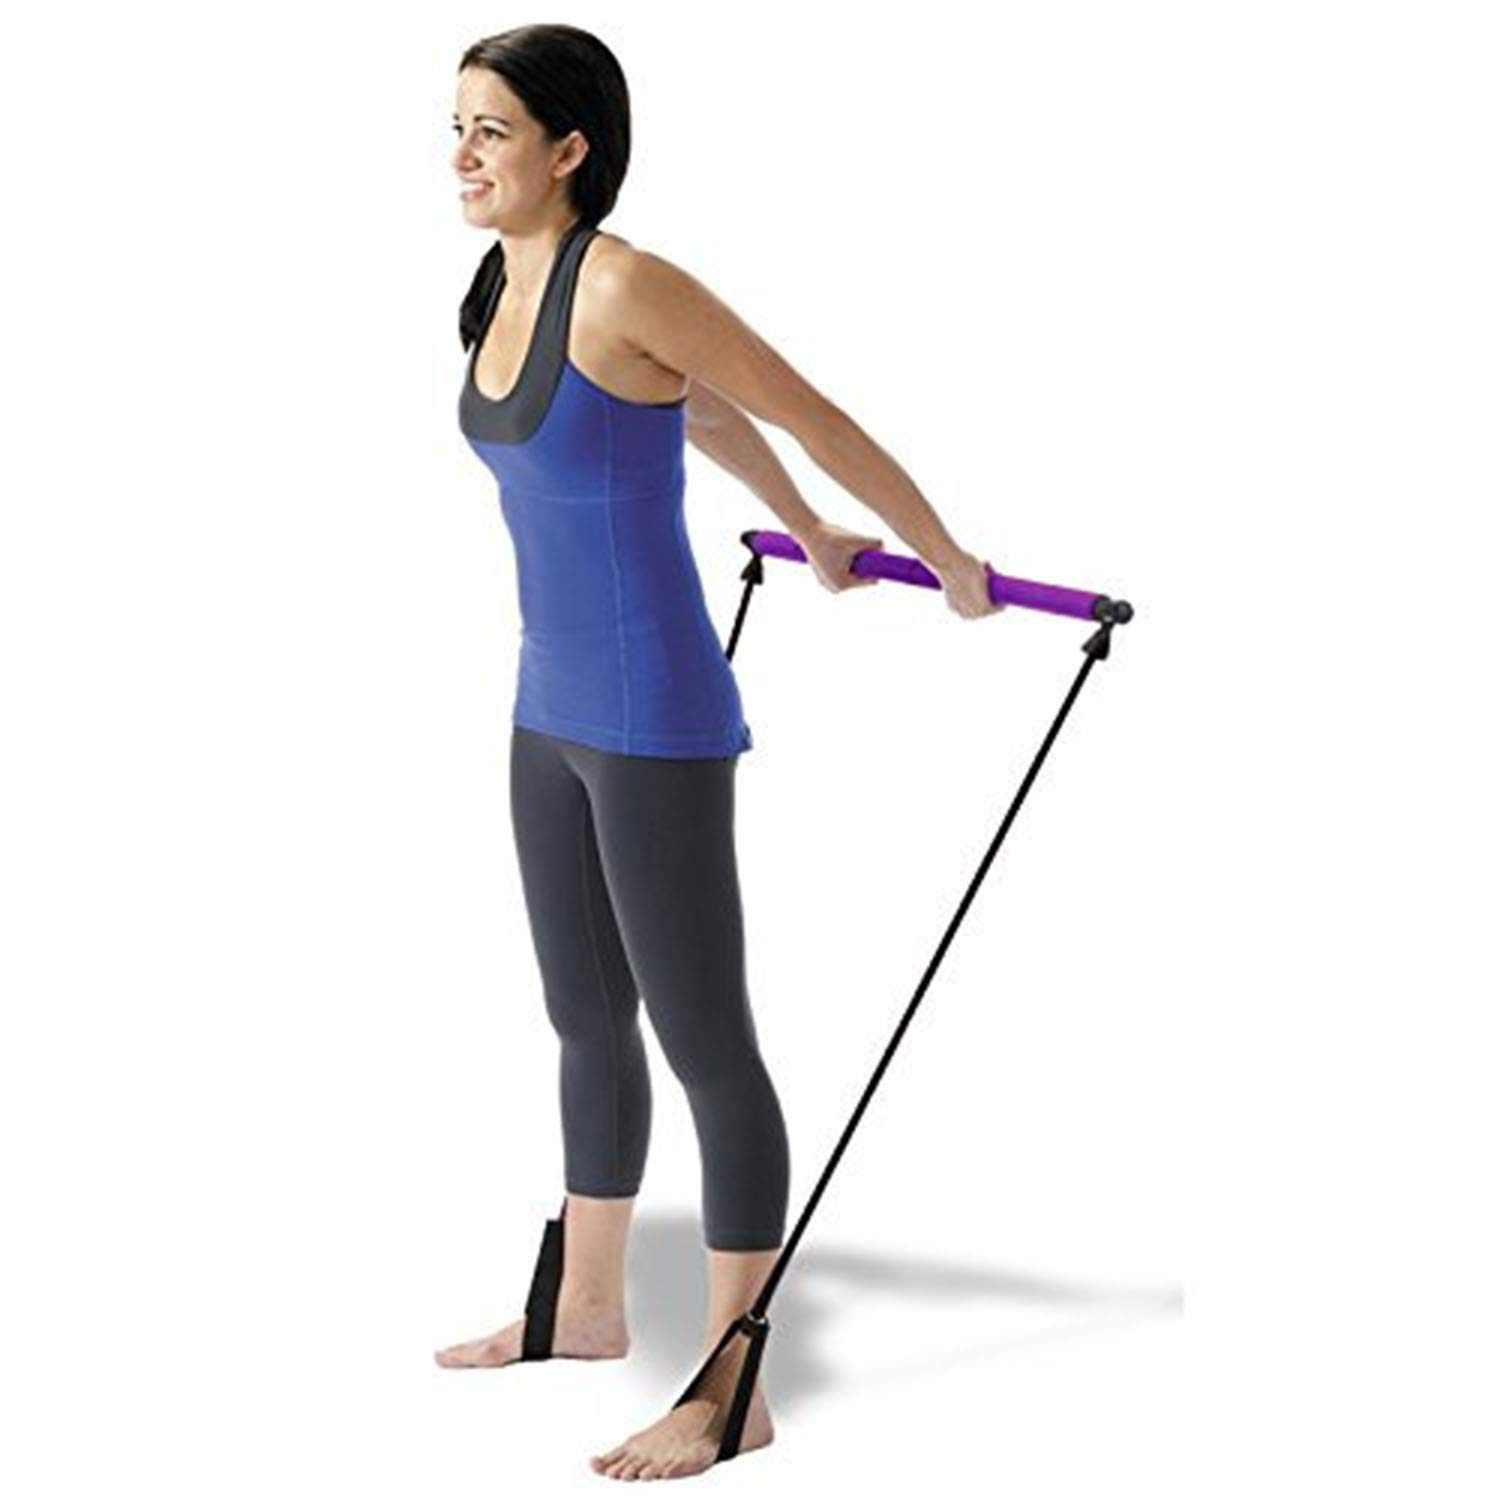 Amazon.com : WSXX Multi-Functional Yoga Rally, Pull Rope ...